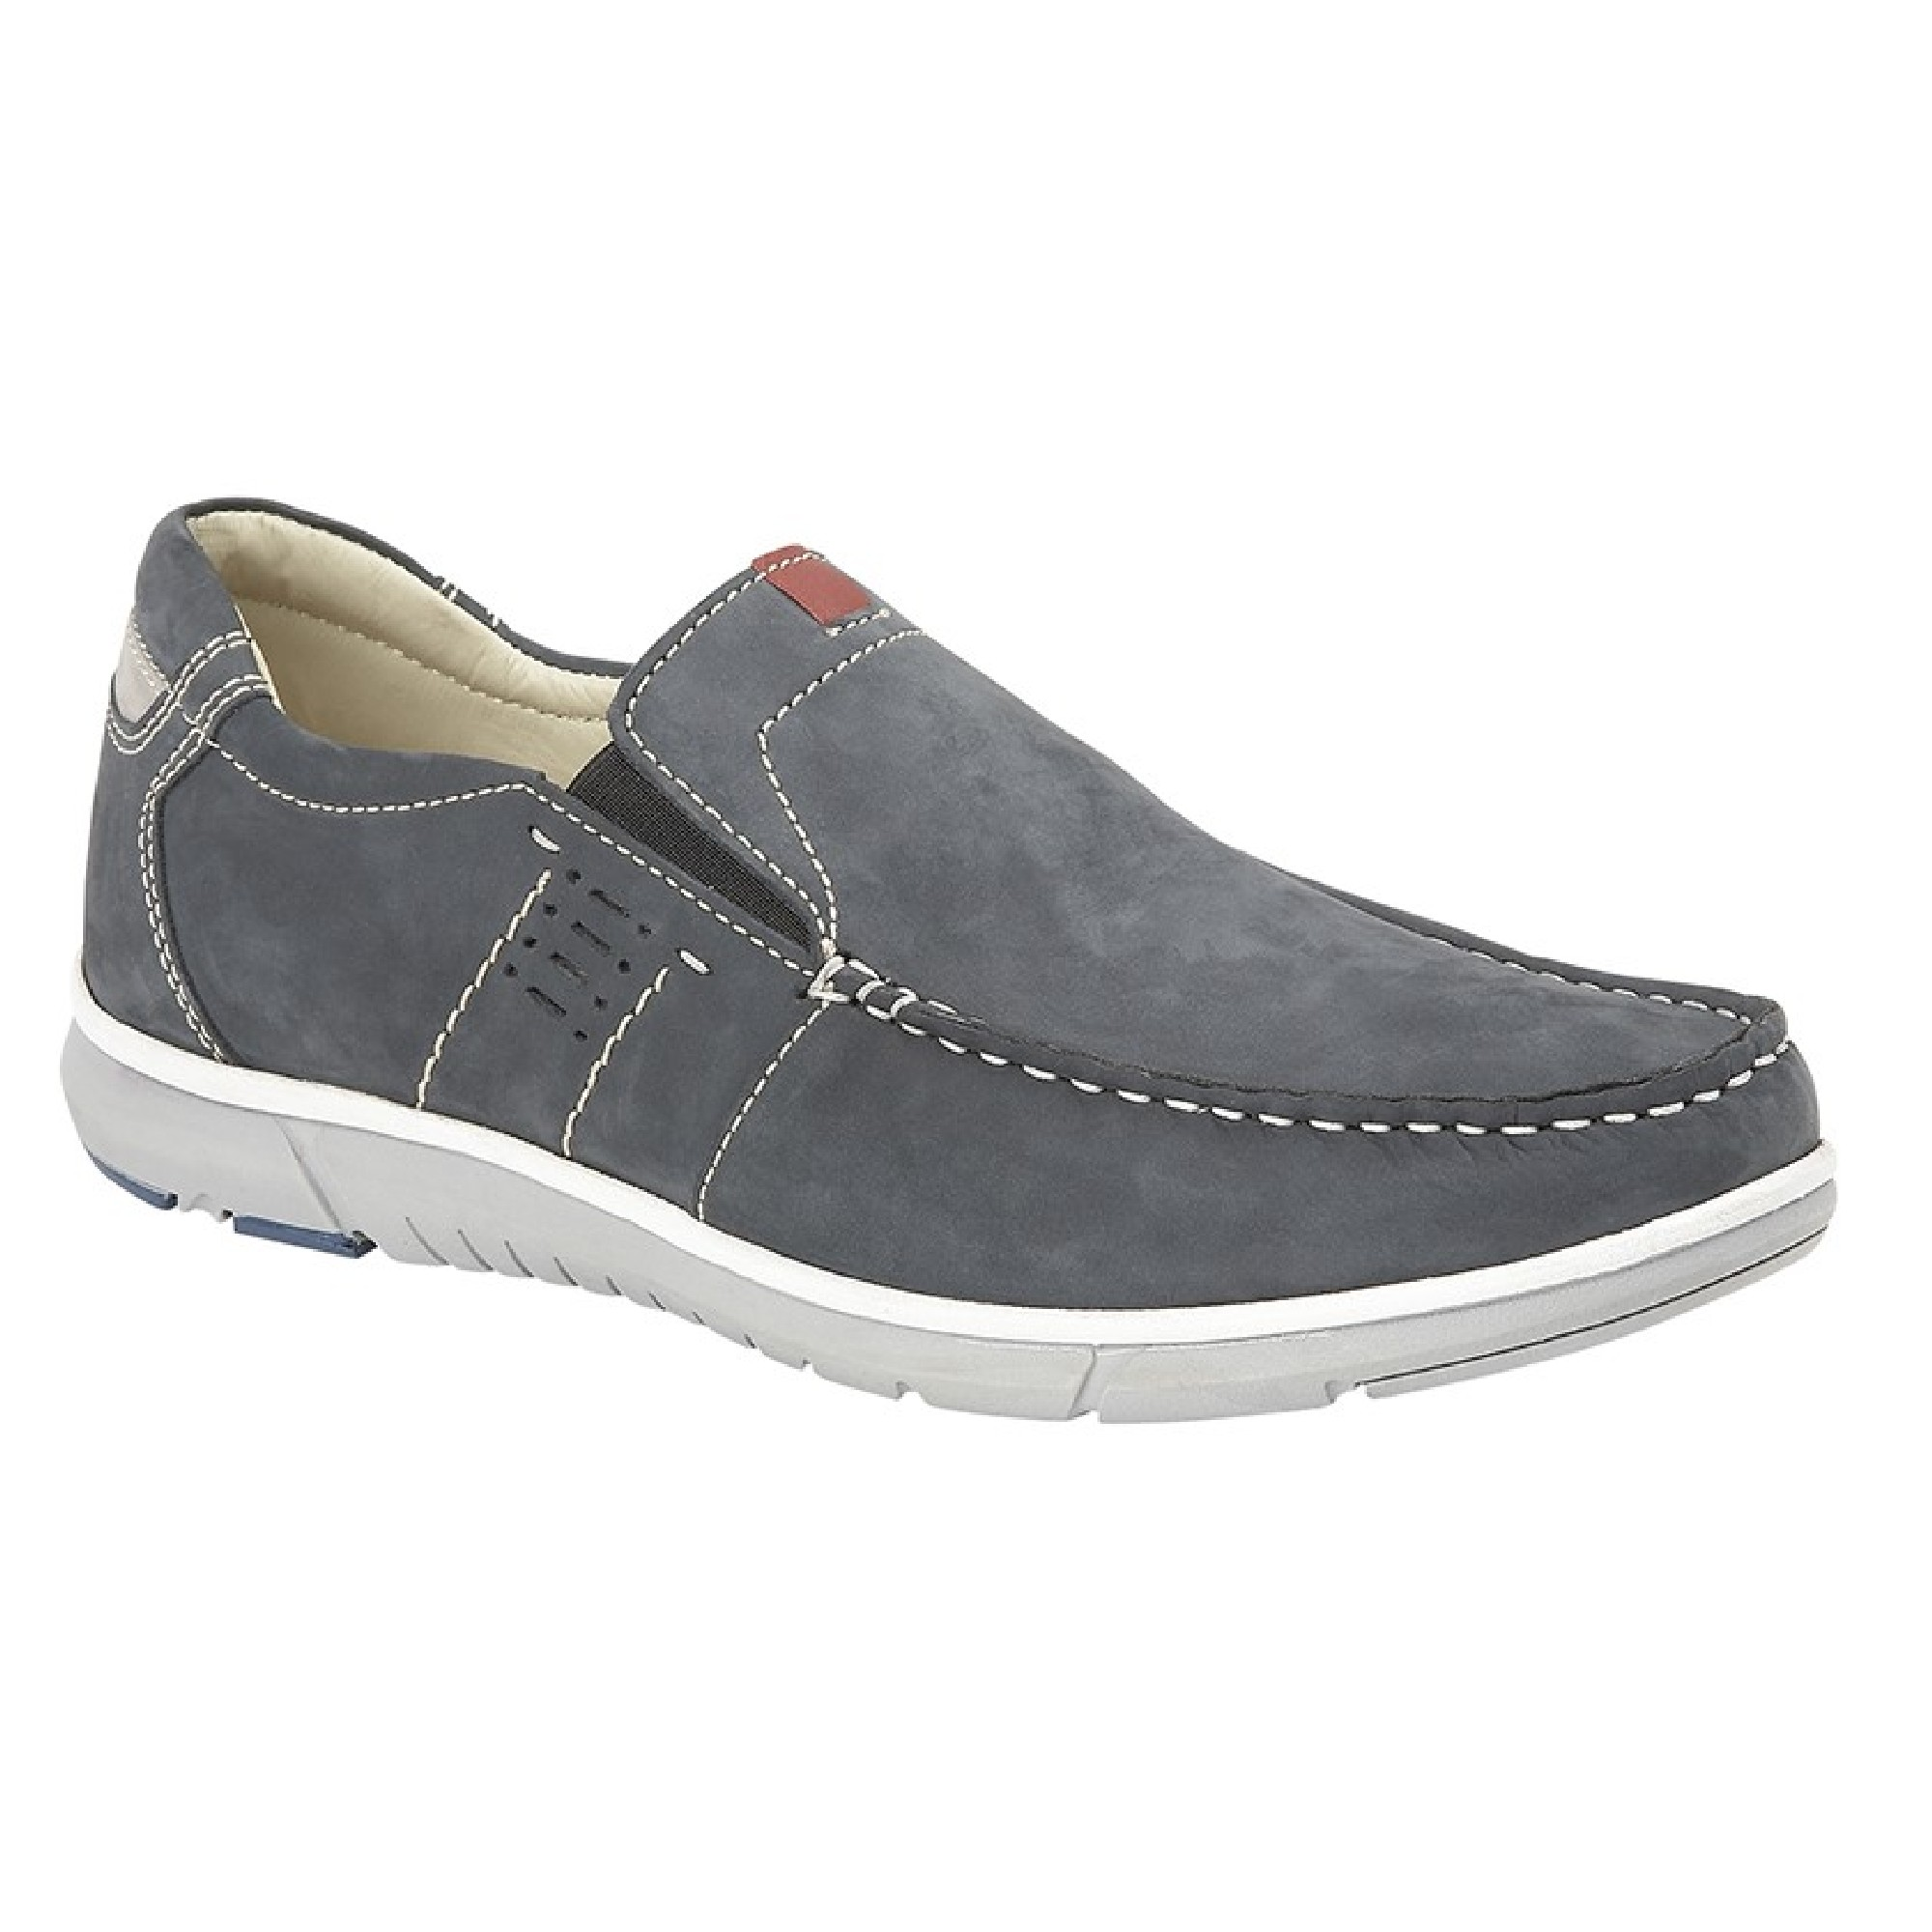 Roamers-Mens-Twin-Gusset-Panel-Casual-Shoes-DF1597